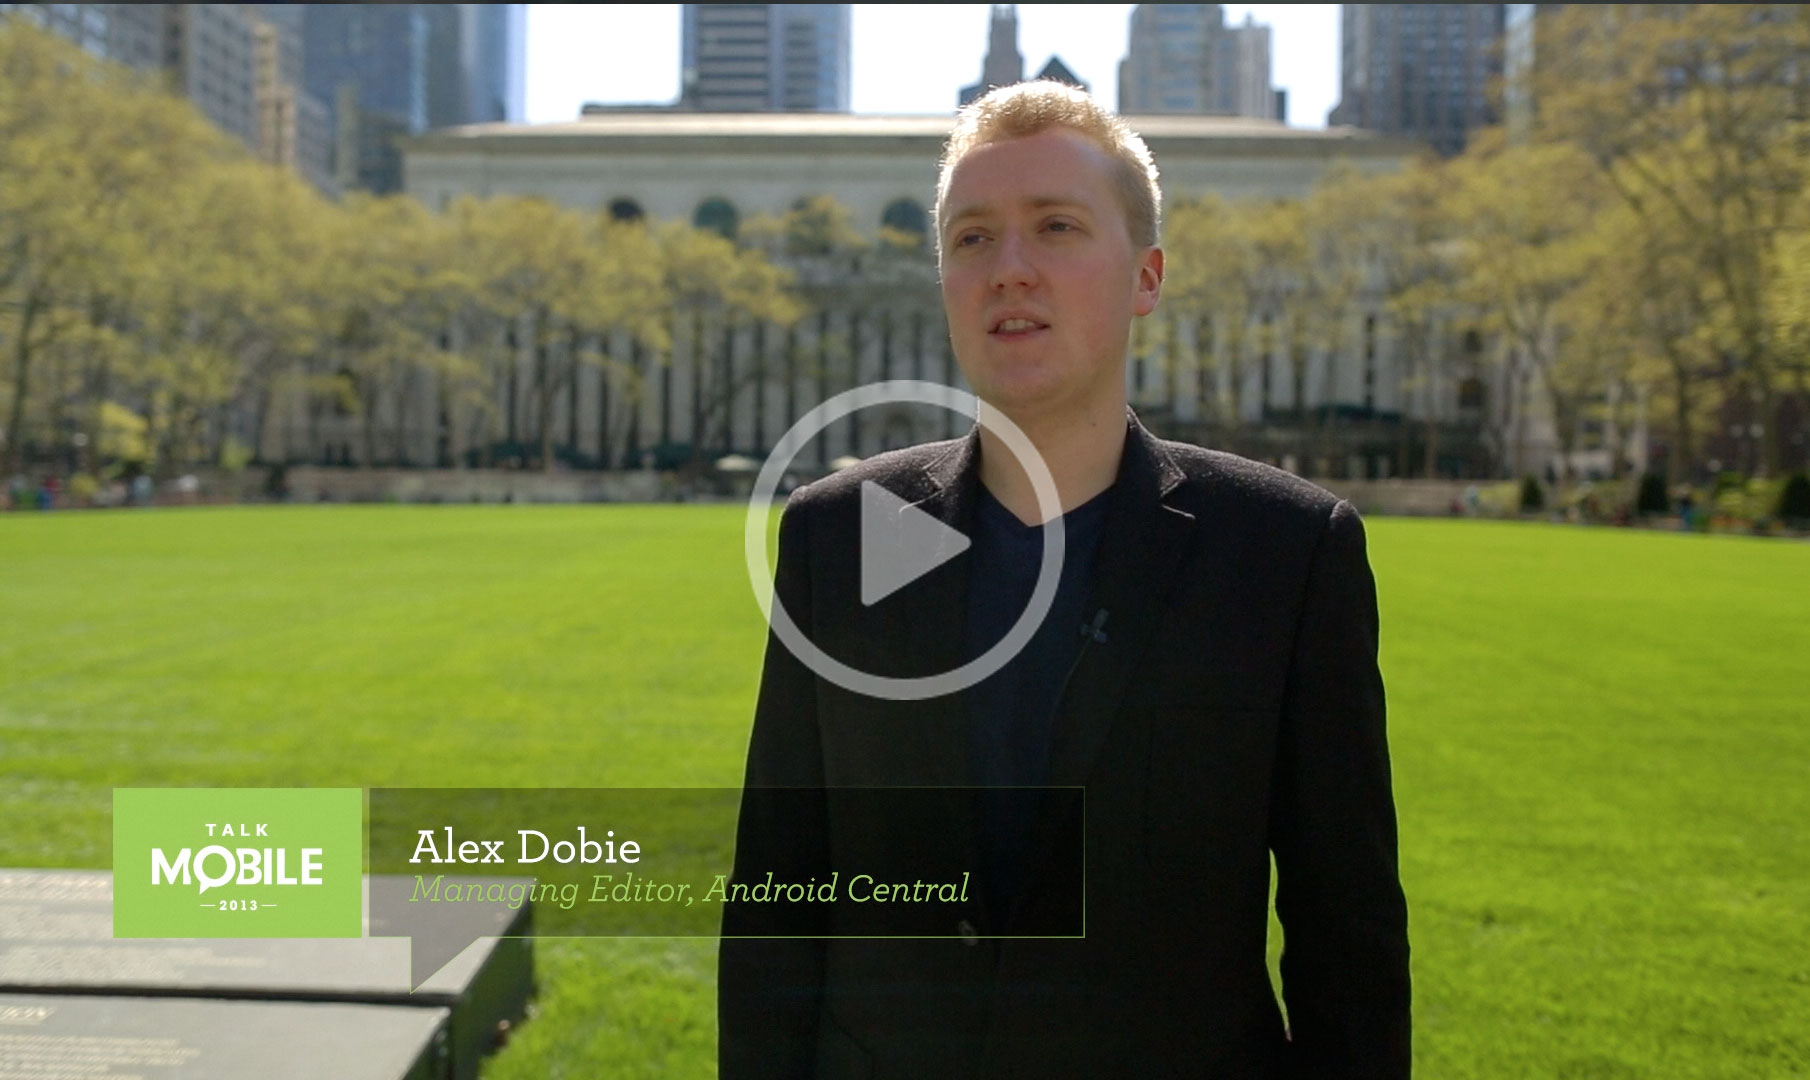 Watch Alex Dobie talk about the future of mobile hardware